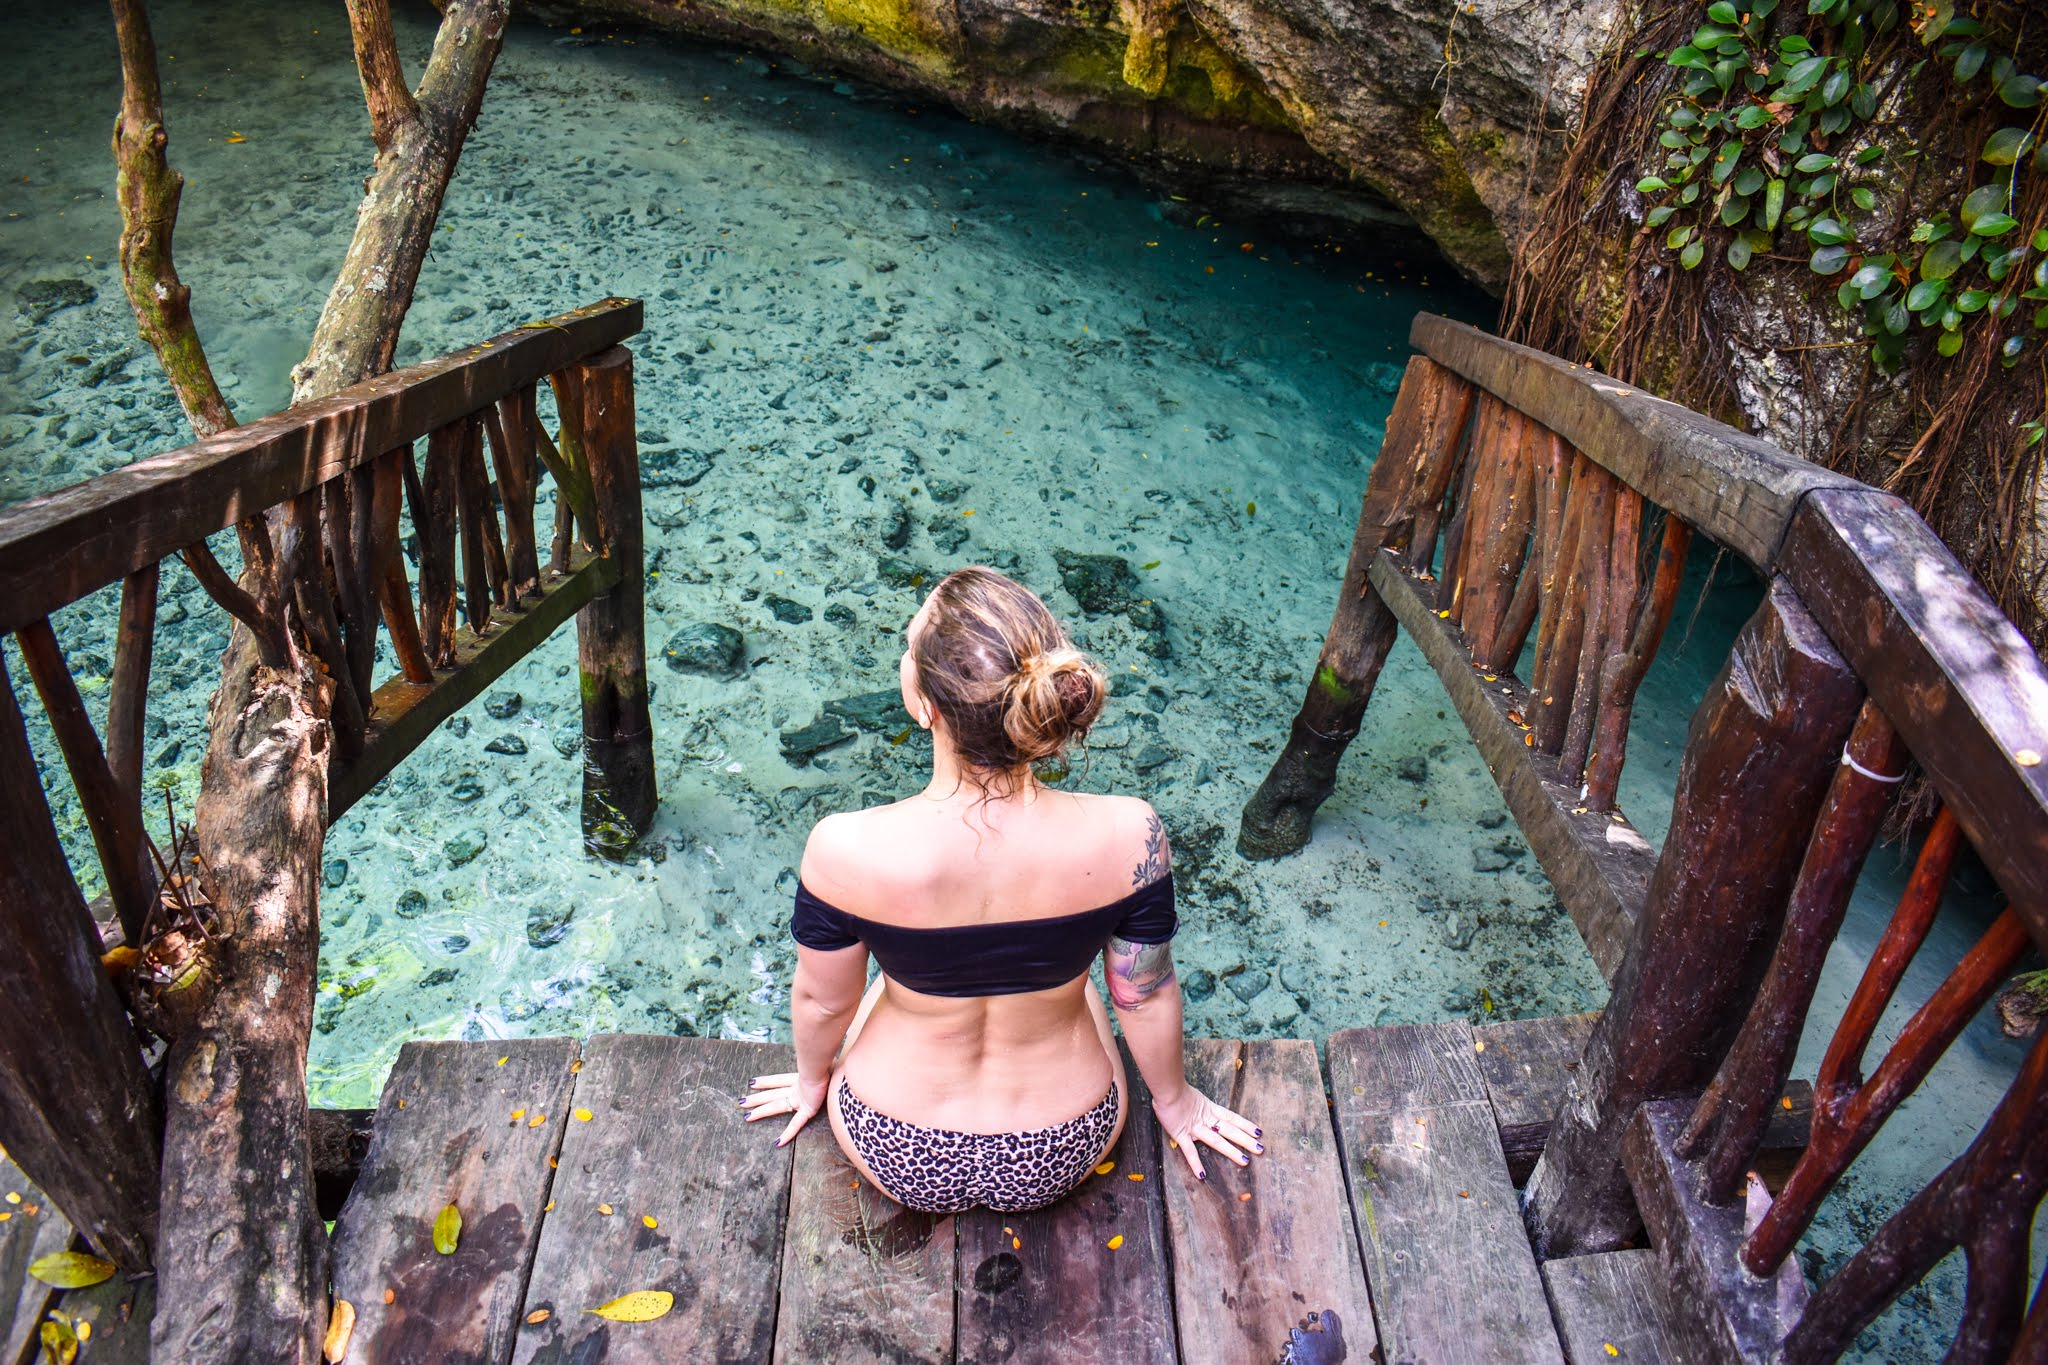 Uprooted-Traveler-Vegan-Weekend-in-Tulum-Mexico-explore-gran-cenote.jpg